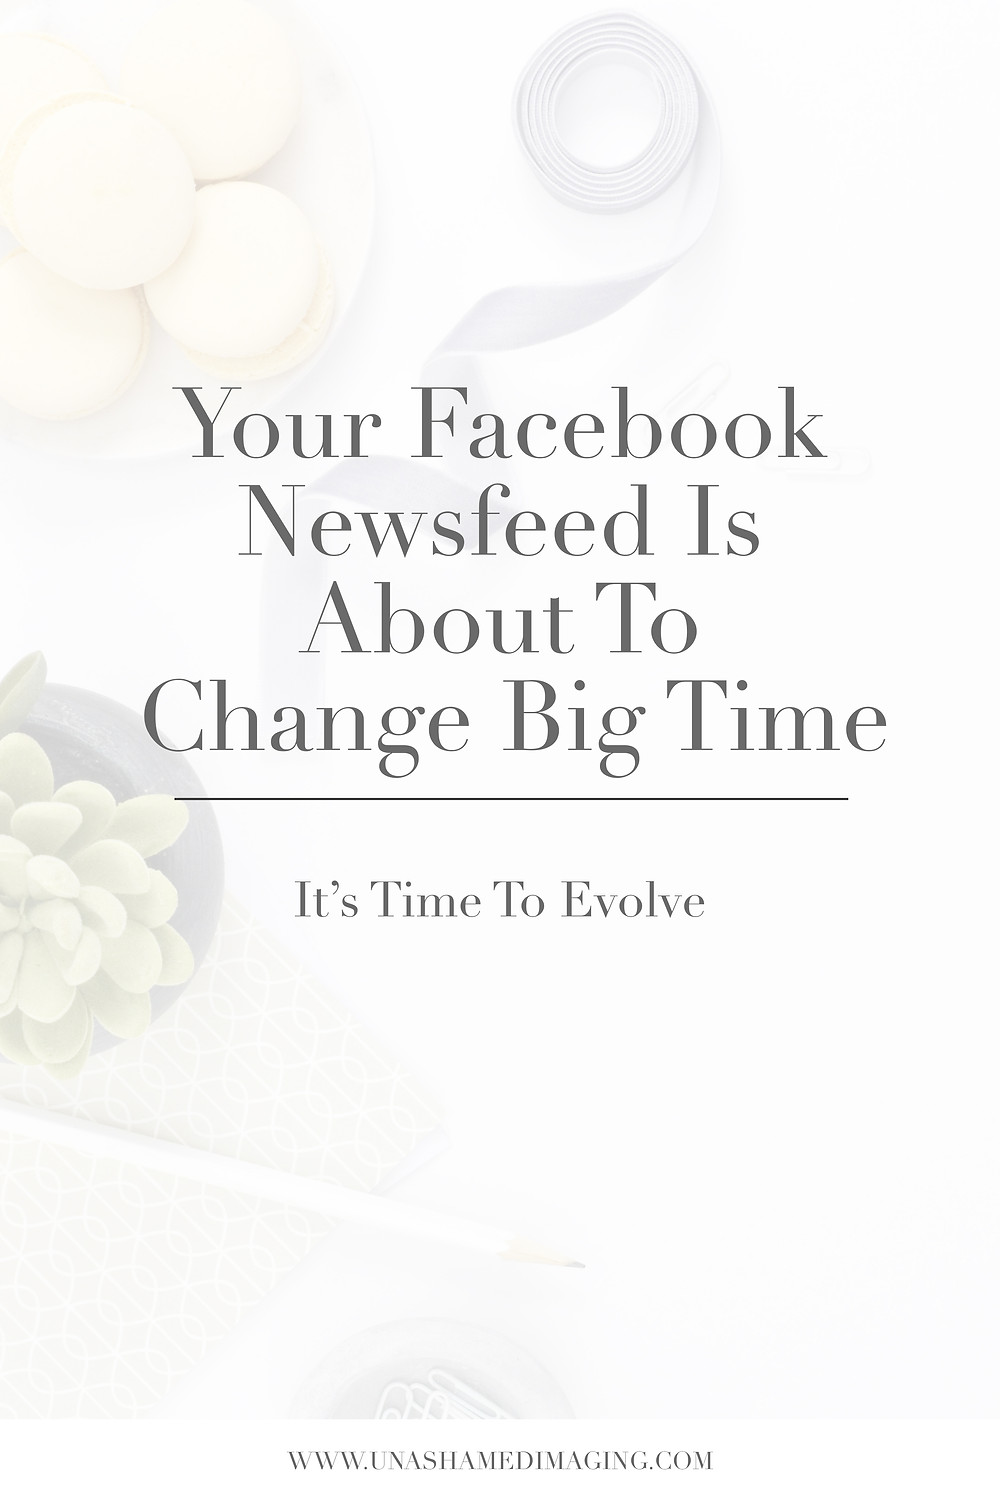 Your Facebook Newsfeed Is About To Change Big Time, Video-Marketing Guru